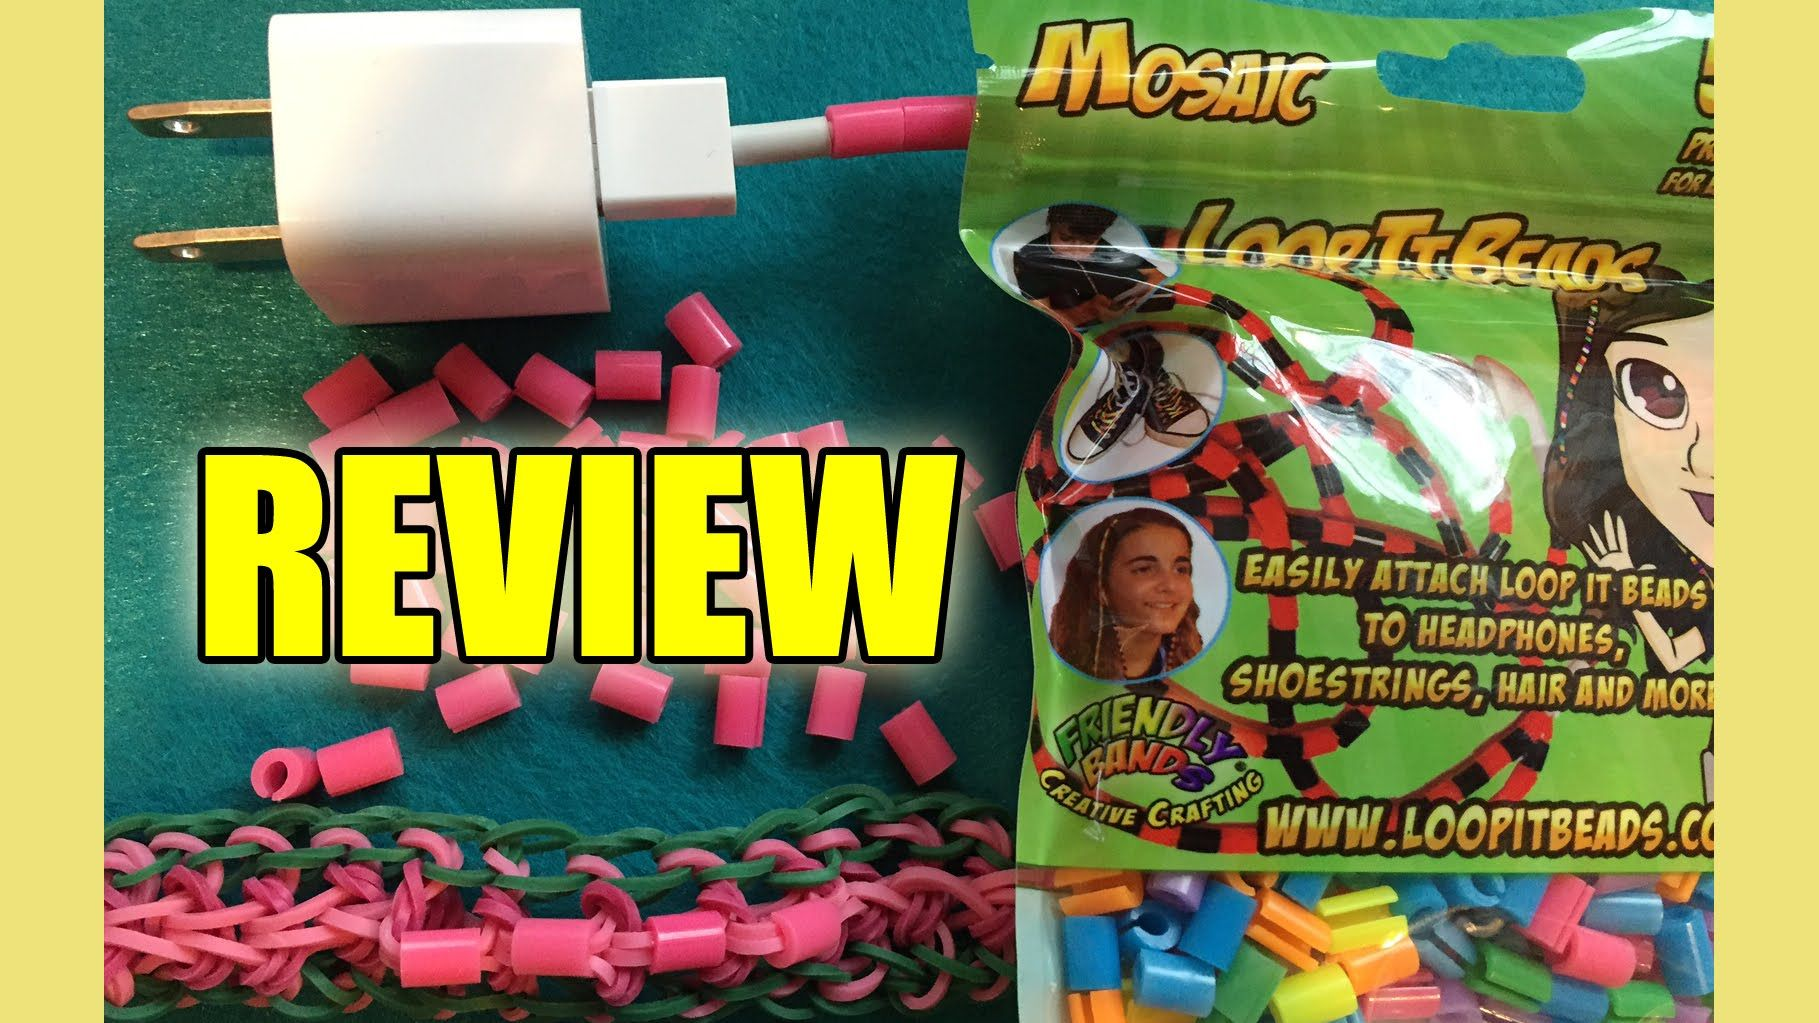 LoopItBeads | Customize your headphones, chargers, and more! | DIY Craft Supply REVIEW